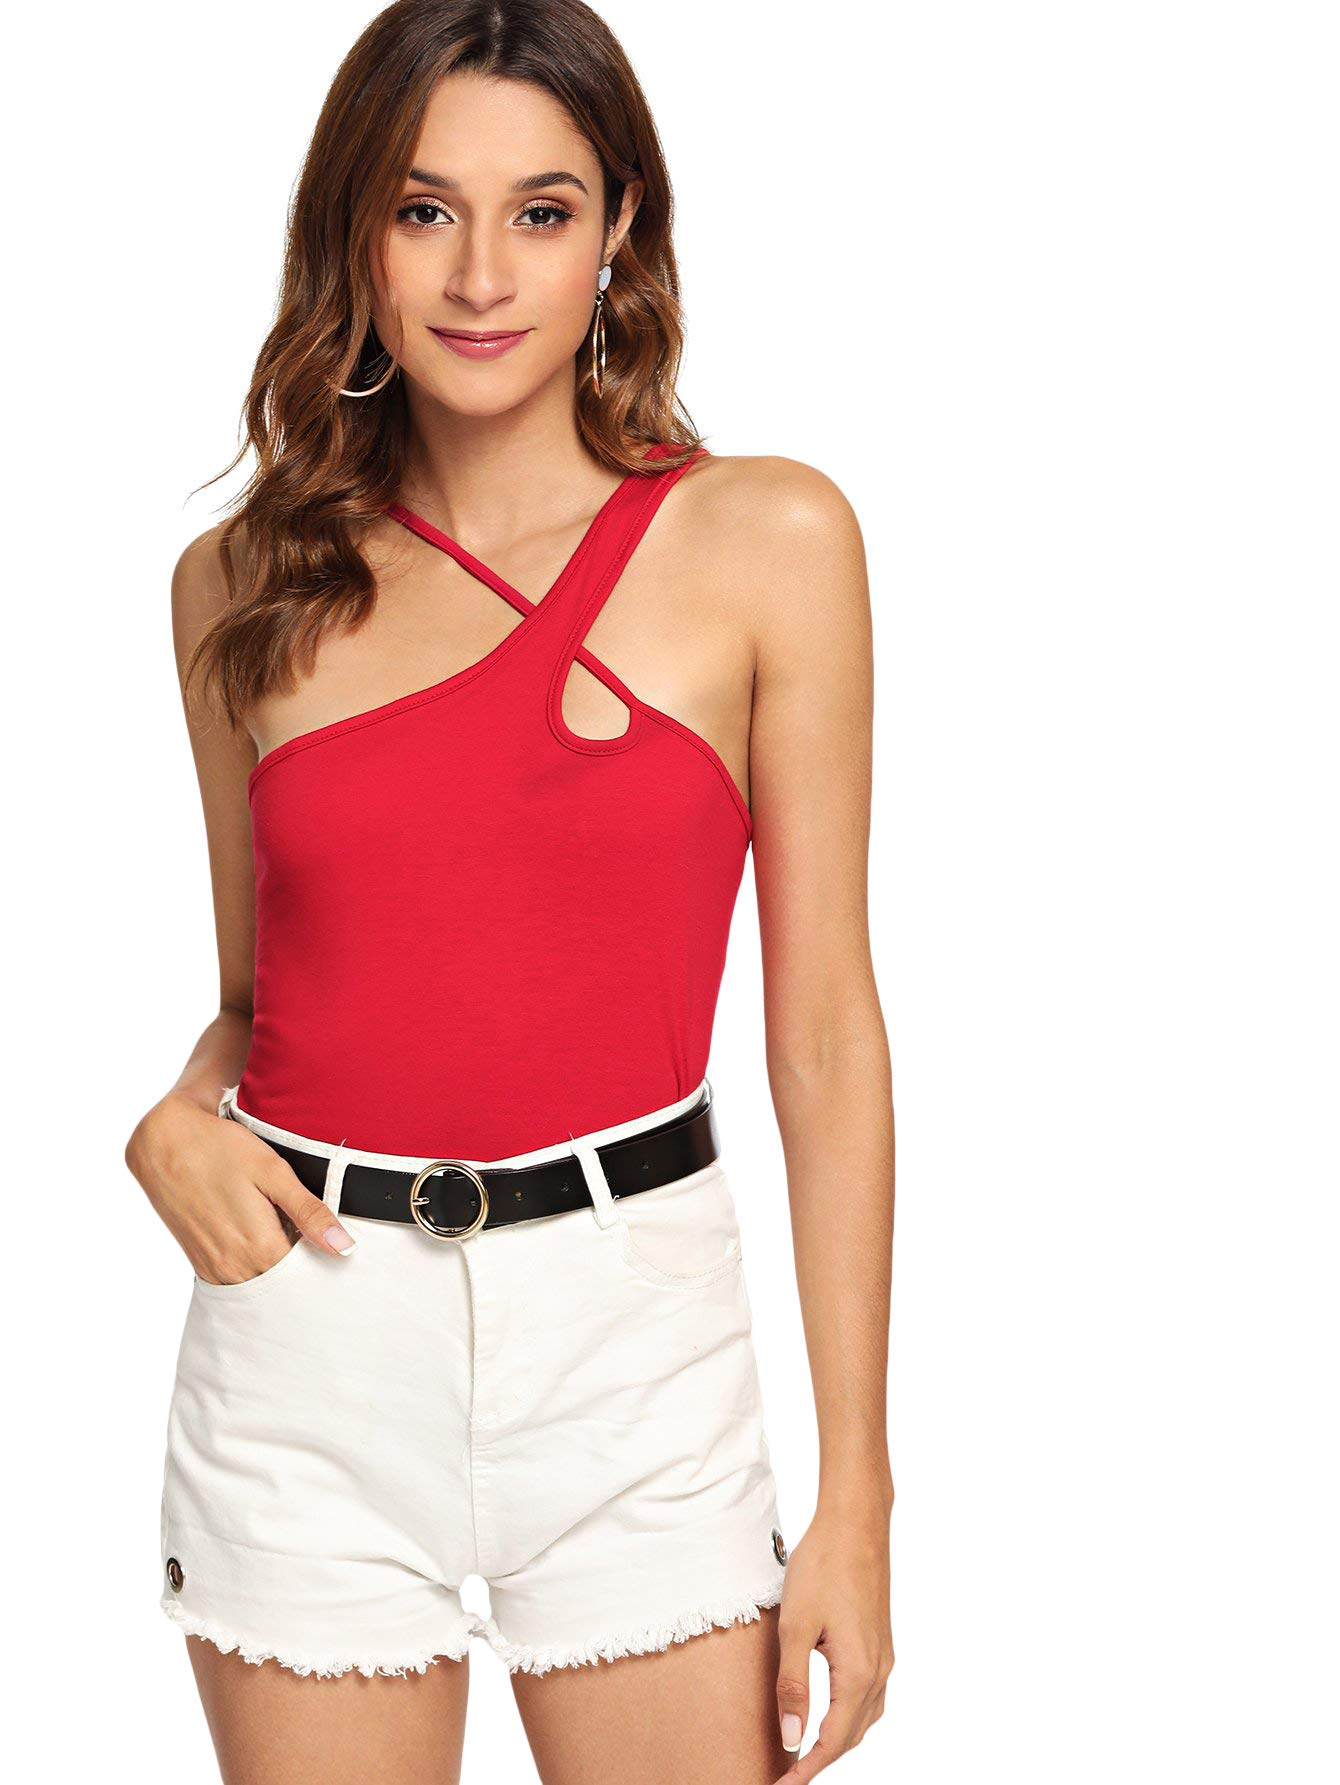 MakeMeChic Women's Summer Sexy Cut Out One Shoulder Strappy Cami Tank Top Red M